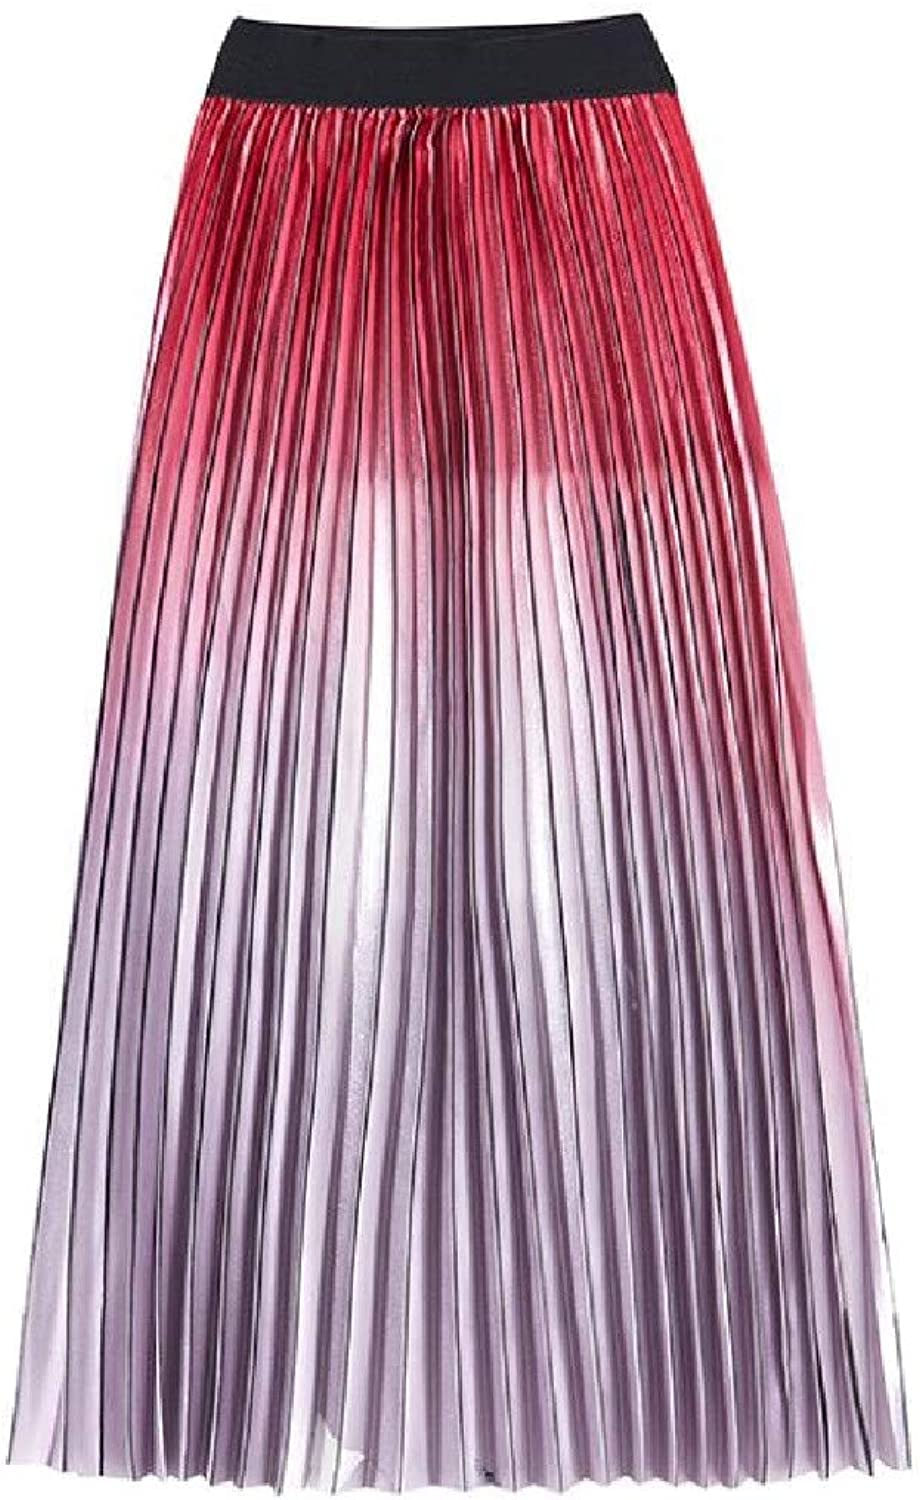 LXie Women Gradient Ramp High Rise Fashion Pleated Autumn Maxi Skirt